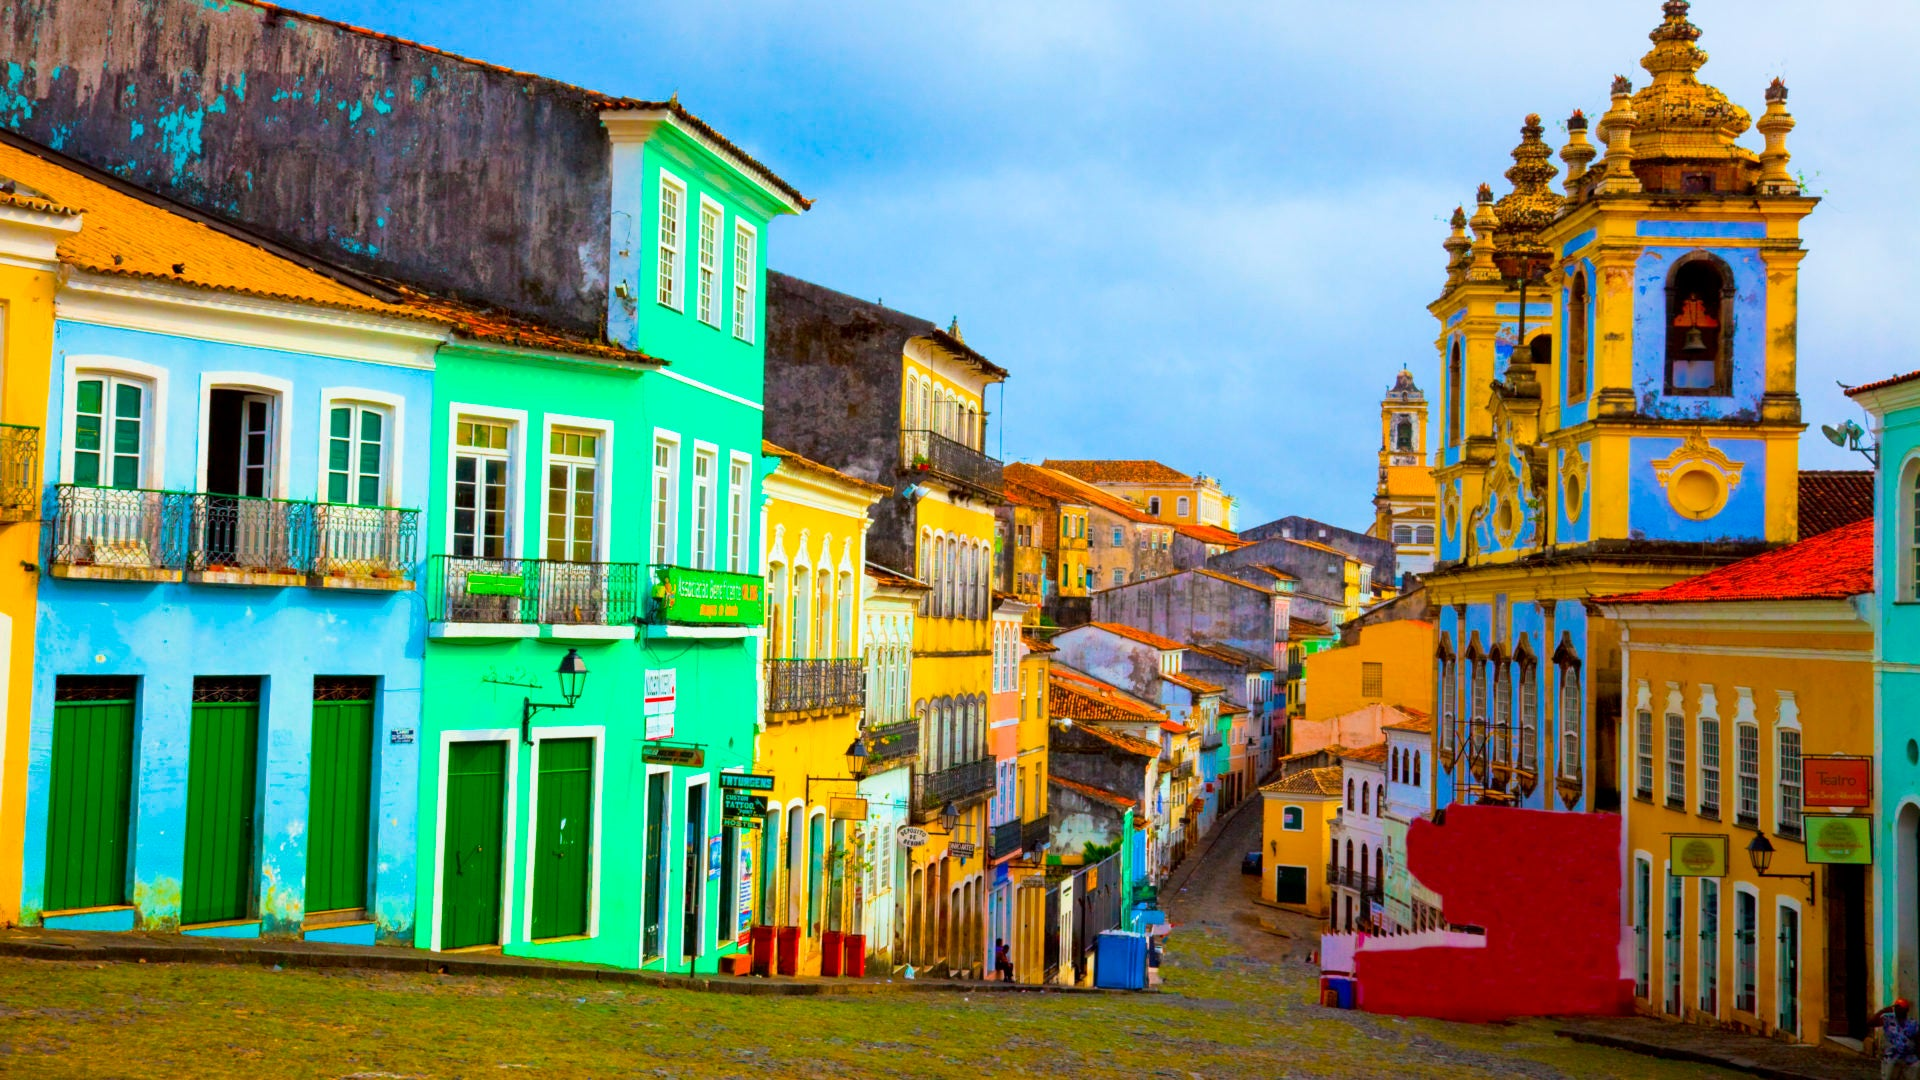 Get Lost: Our News & Politics Director  Takes a Quick Jaunt to Brazil